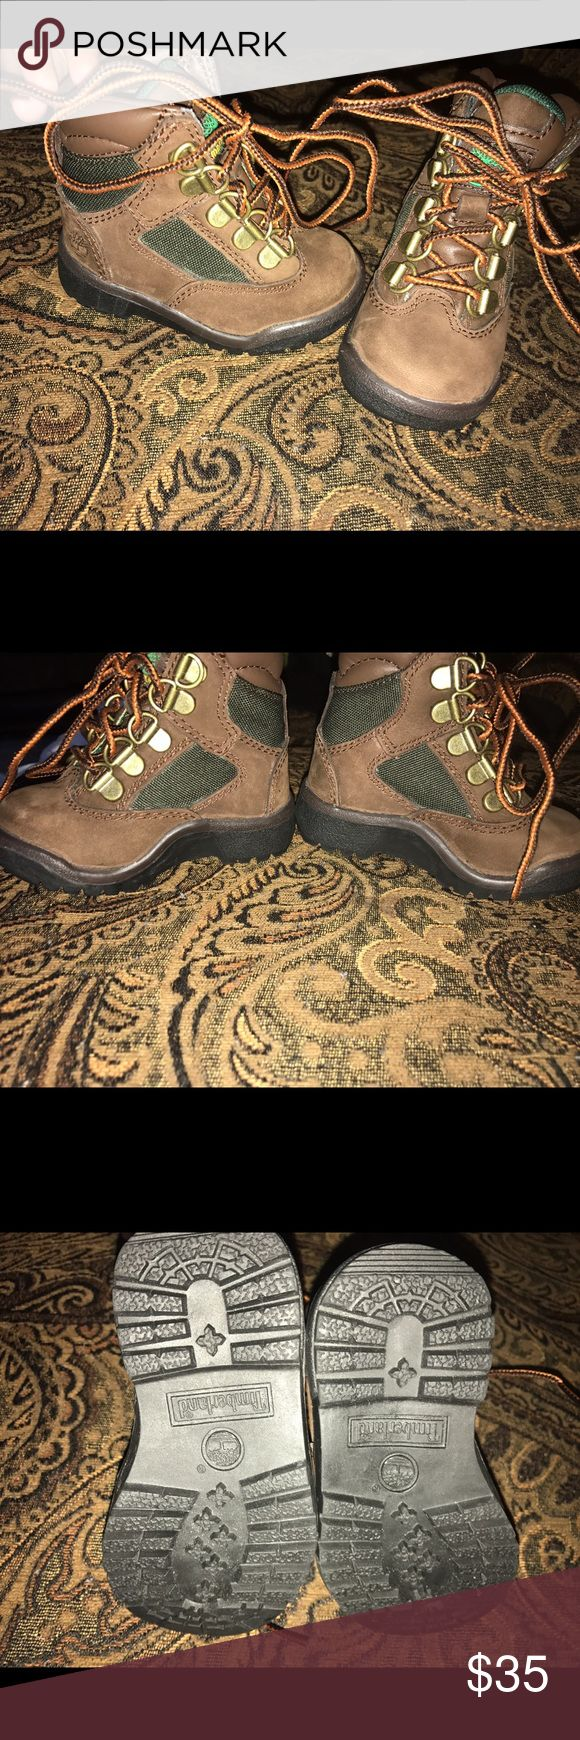 """Brand new timberland Field Boots Never worn brand new timberland Field Boots brown and hunter green """"beef and broccoli"""" Timberland Shoes"""